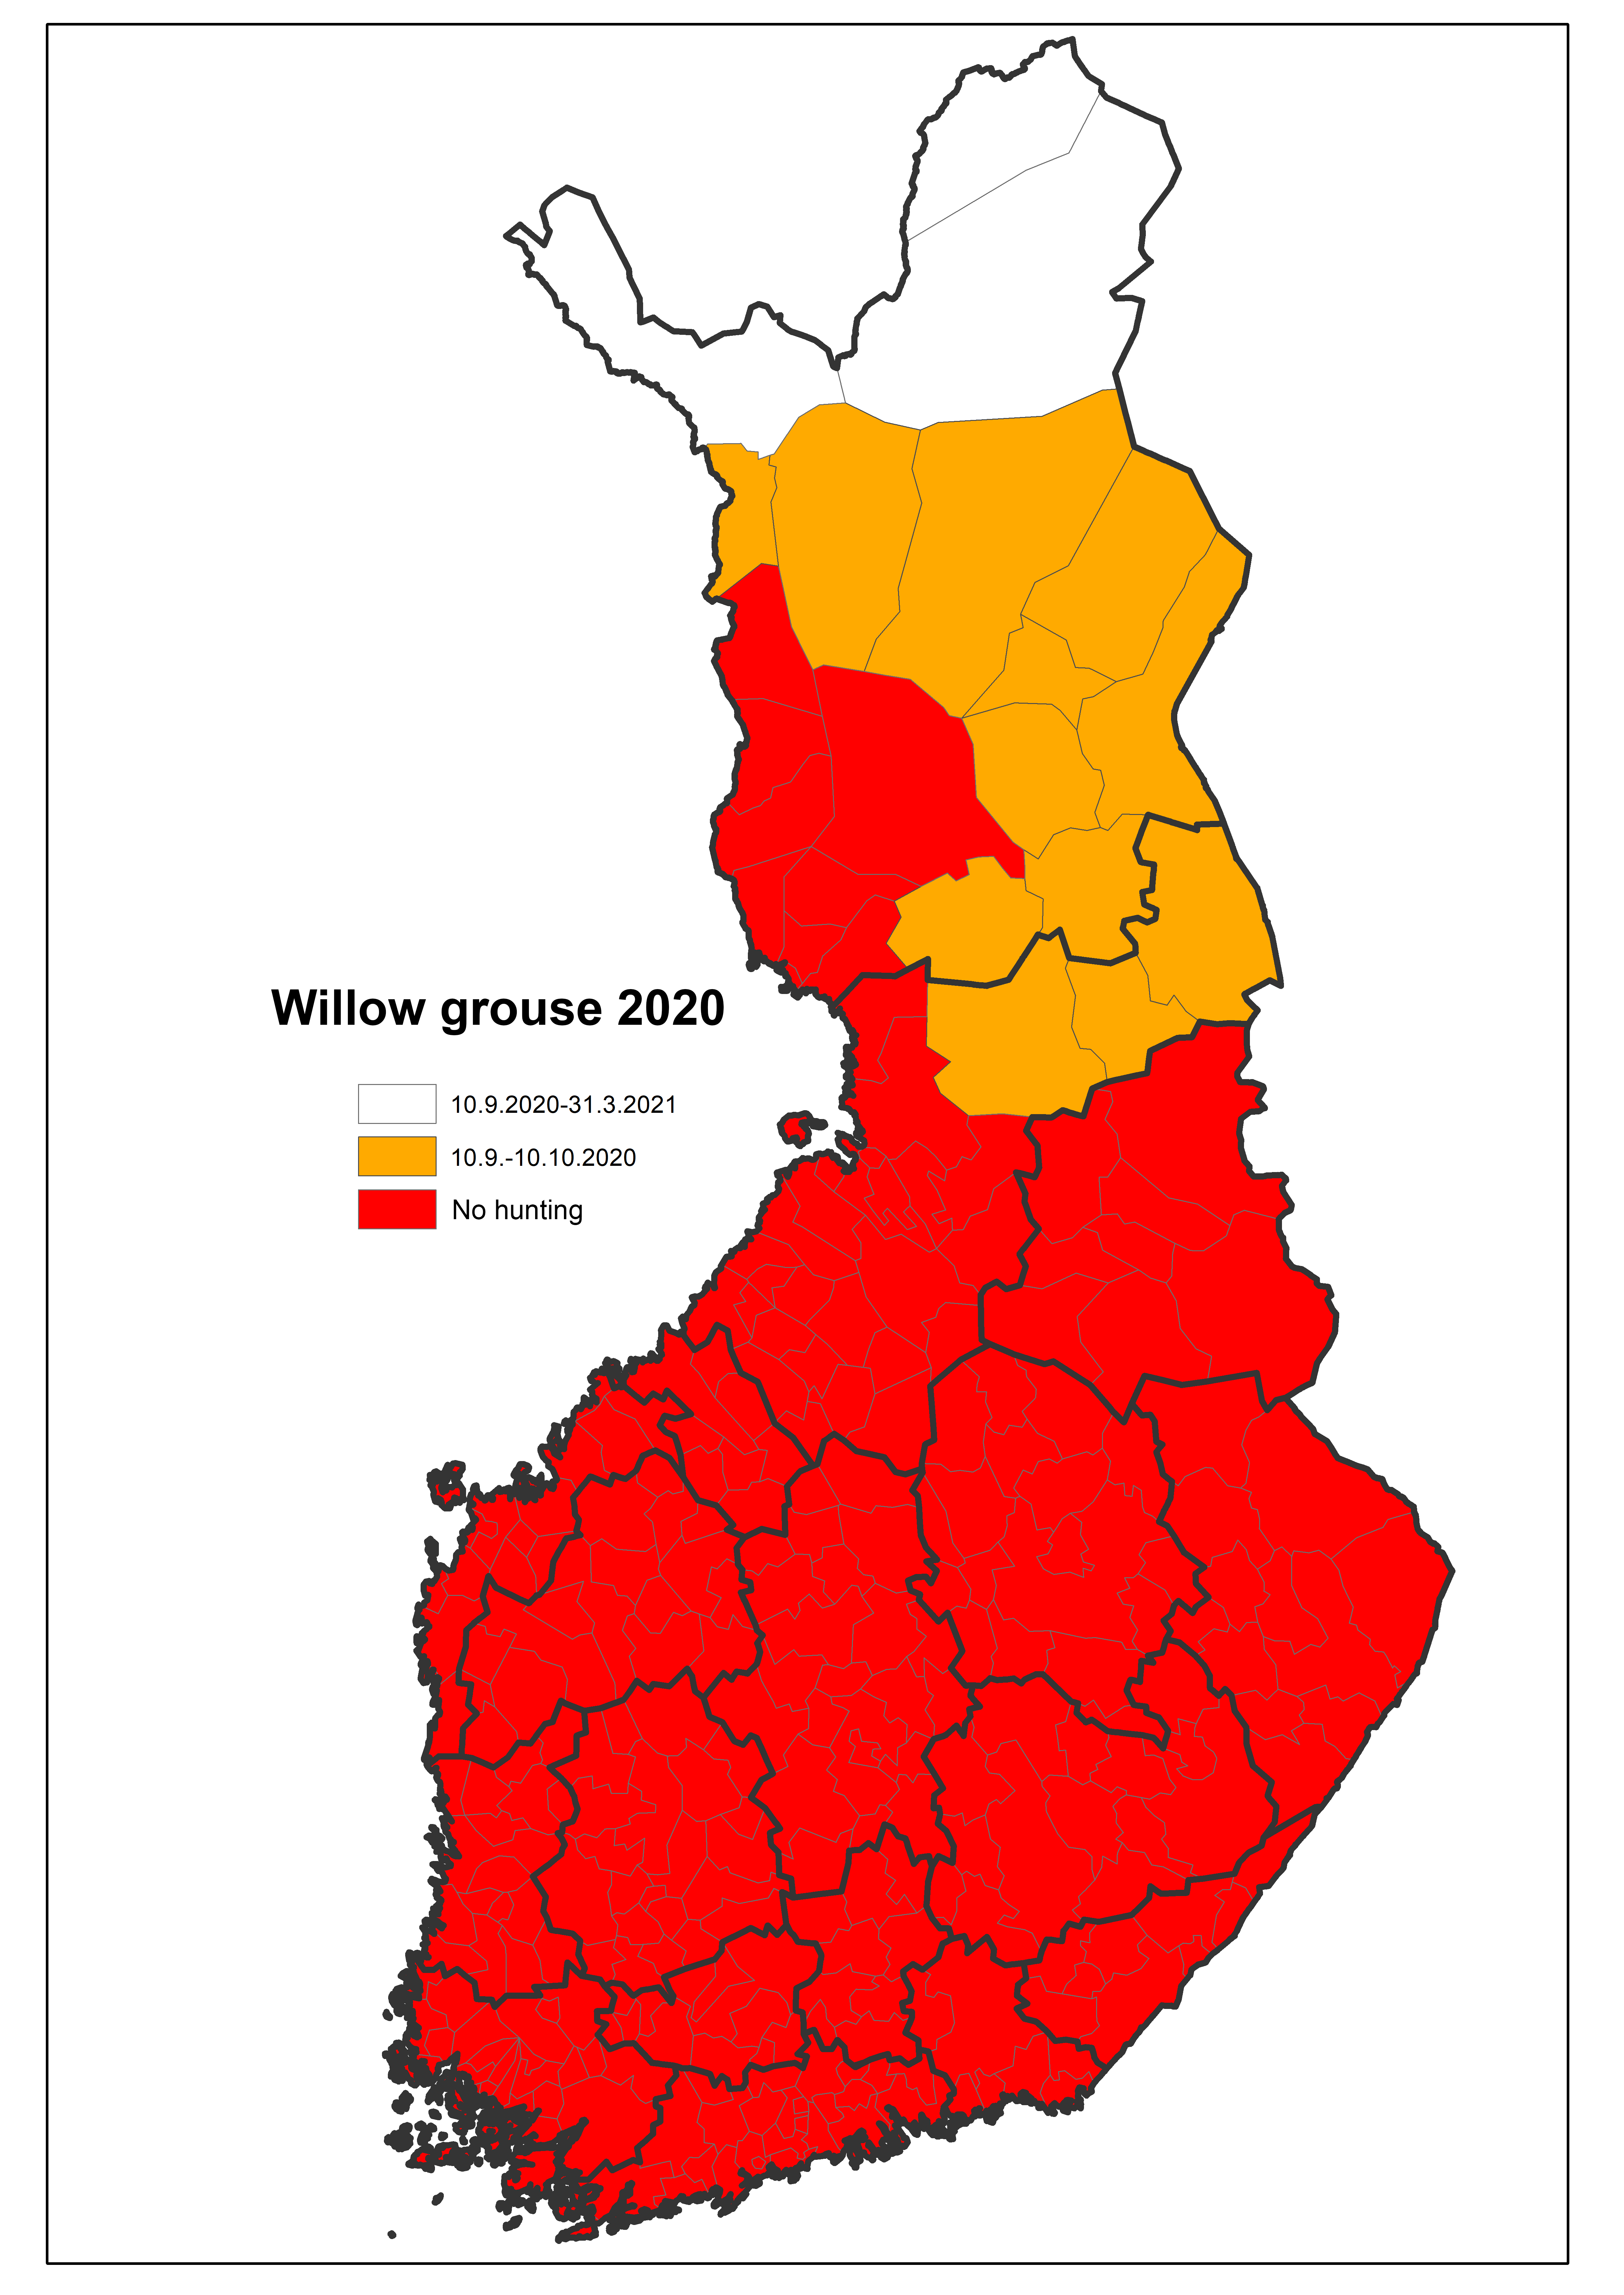 Map of hunting areas and seasons year 2020: Willow grouse.